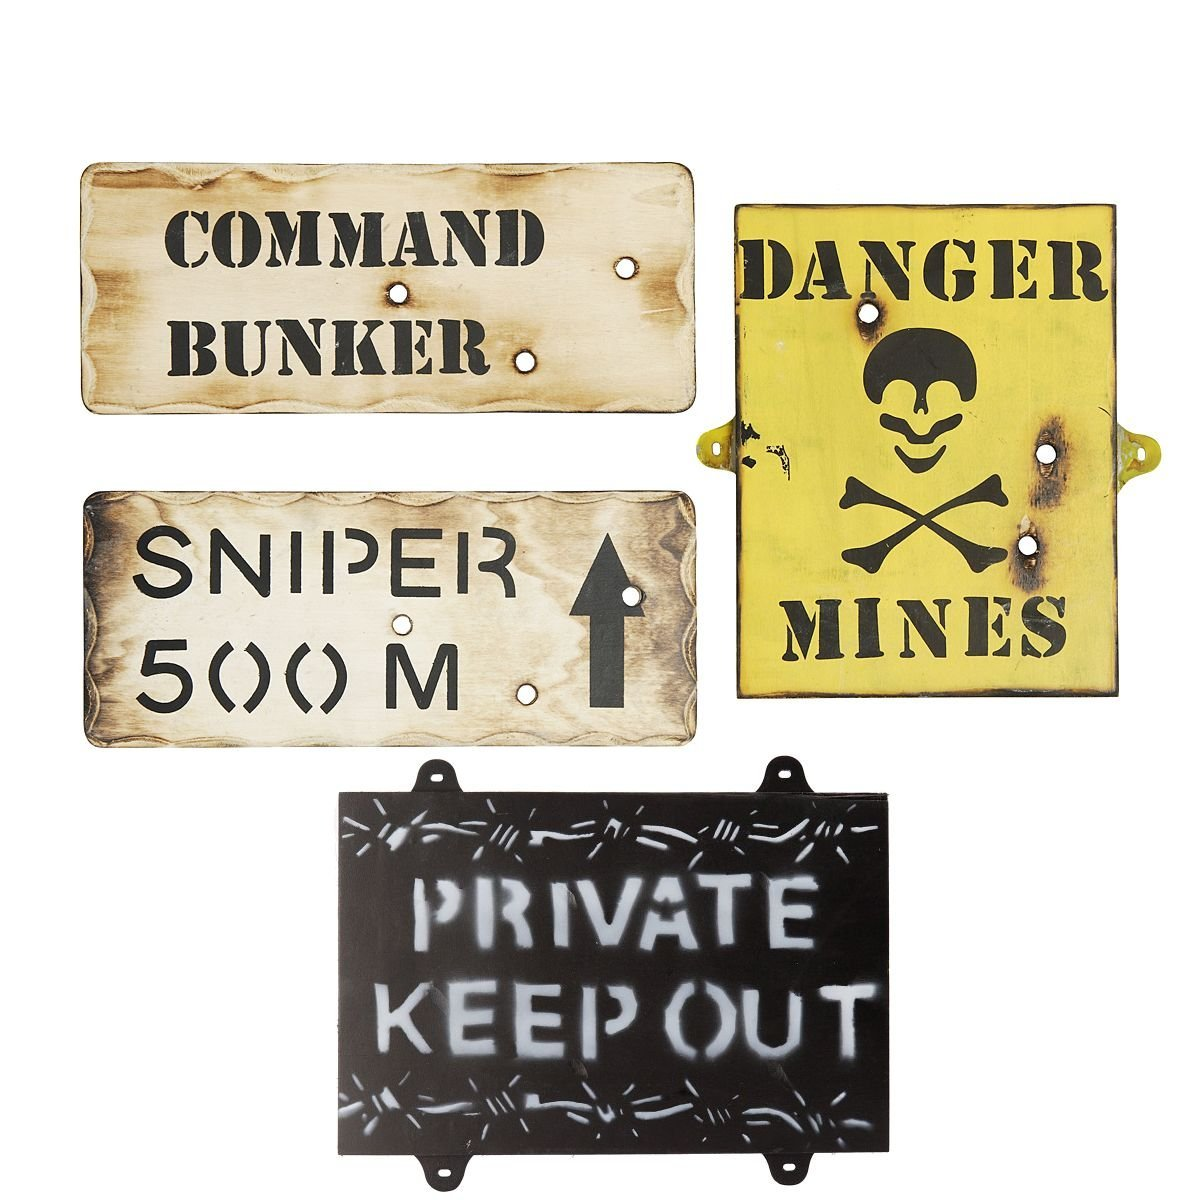 Set Of 4 Wooden Army Wall Signs  Kids Army Bedroom Signs. Attorneys In Chattanooga Tn No Pmi Refinance. Real Estate Reo Asset Management Companies. Christian Distance Education 401 K Pension. Financially Responsible Officer Bond. Personal Finance Reddit Skype Conference Call. Universities In Brooklyn Ny Blogs By Writers. How To Get Preapproved For A Mortgage Loan. New Jersey Security Companies